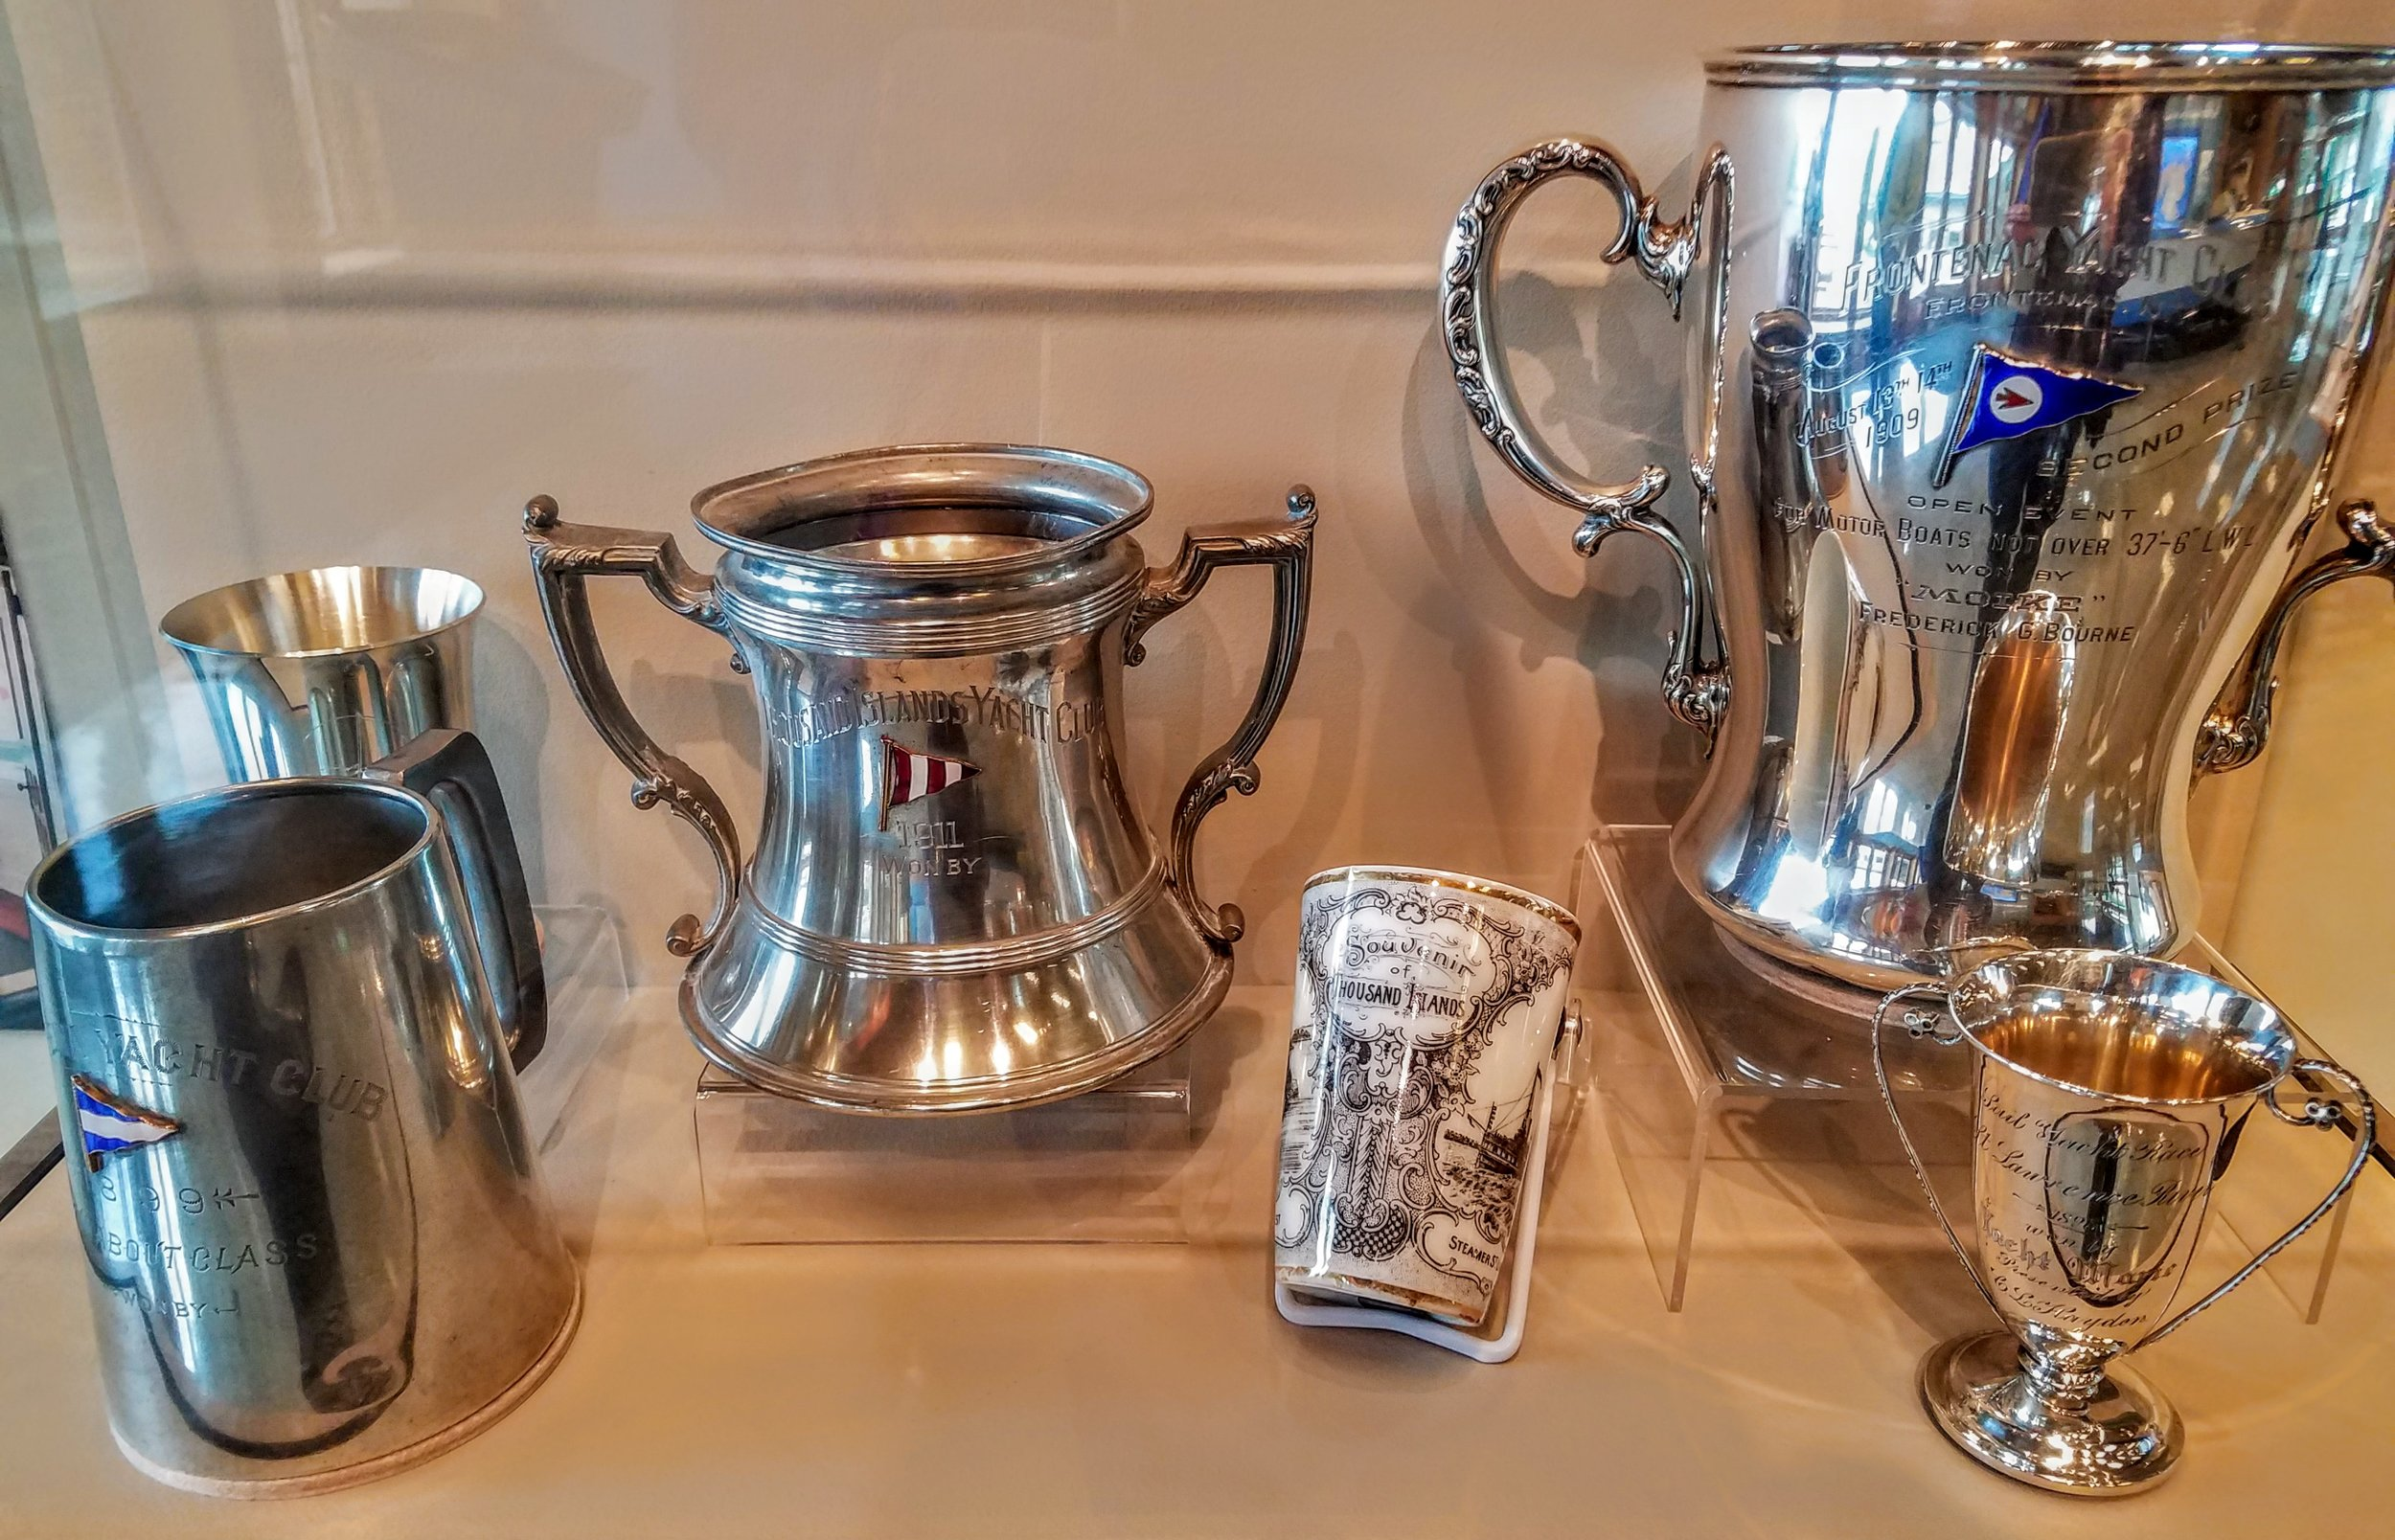 …vintage racing trophies and souvenirs…